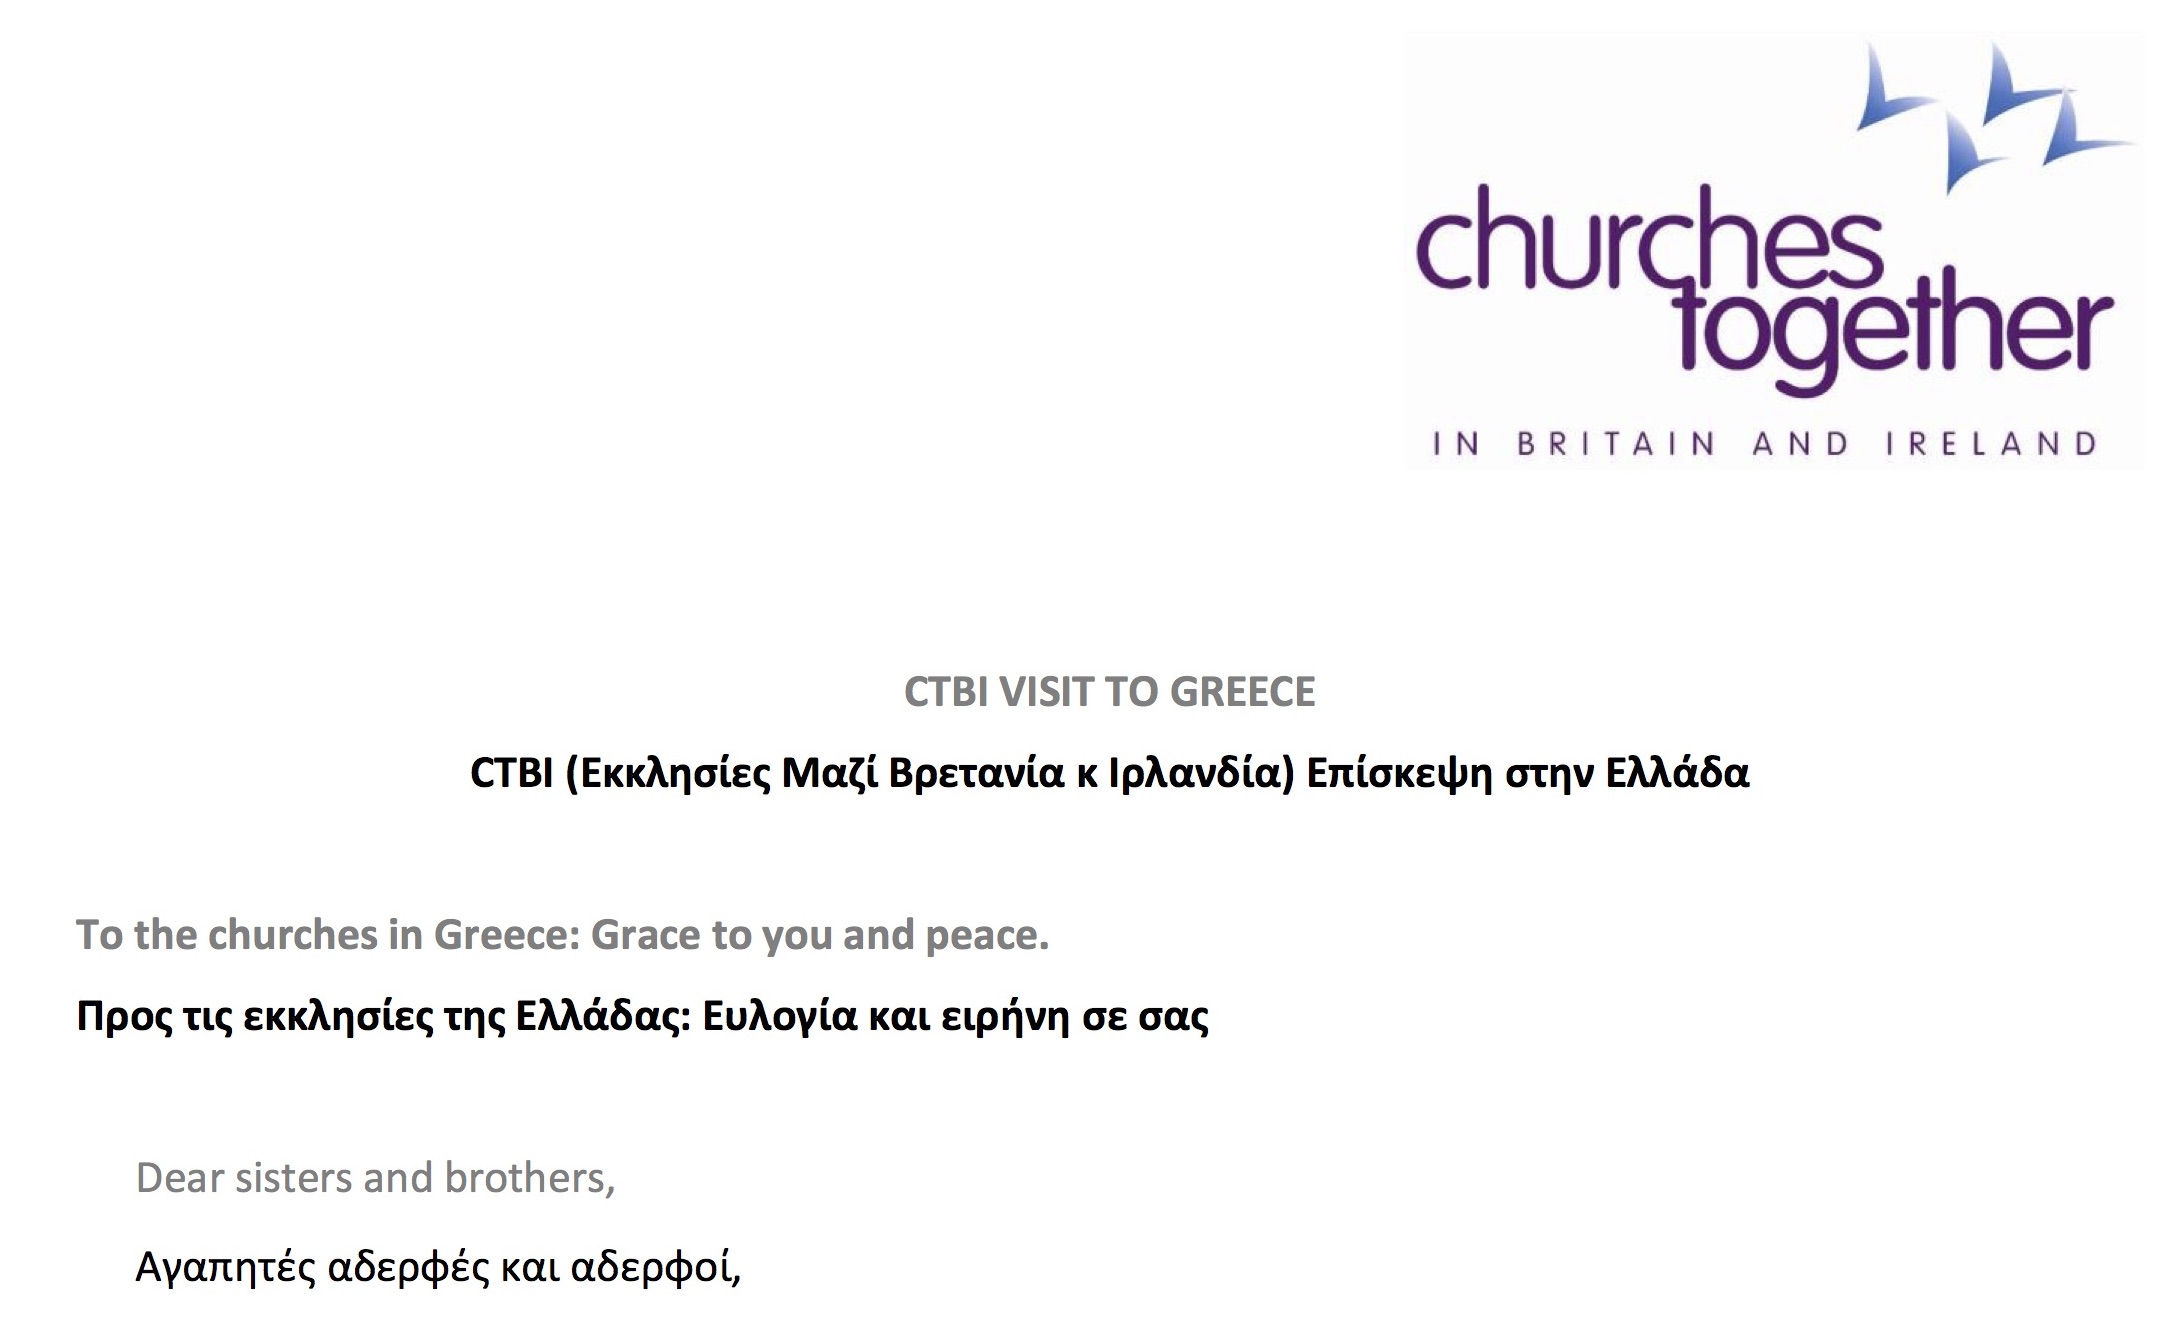 To the churches in Greece: Grace to you and peace